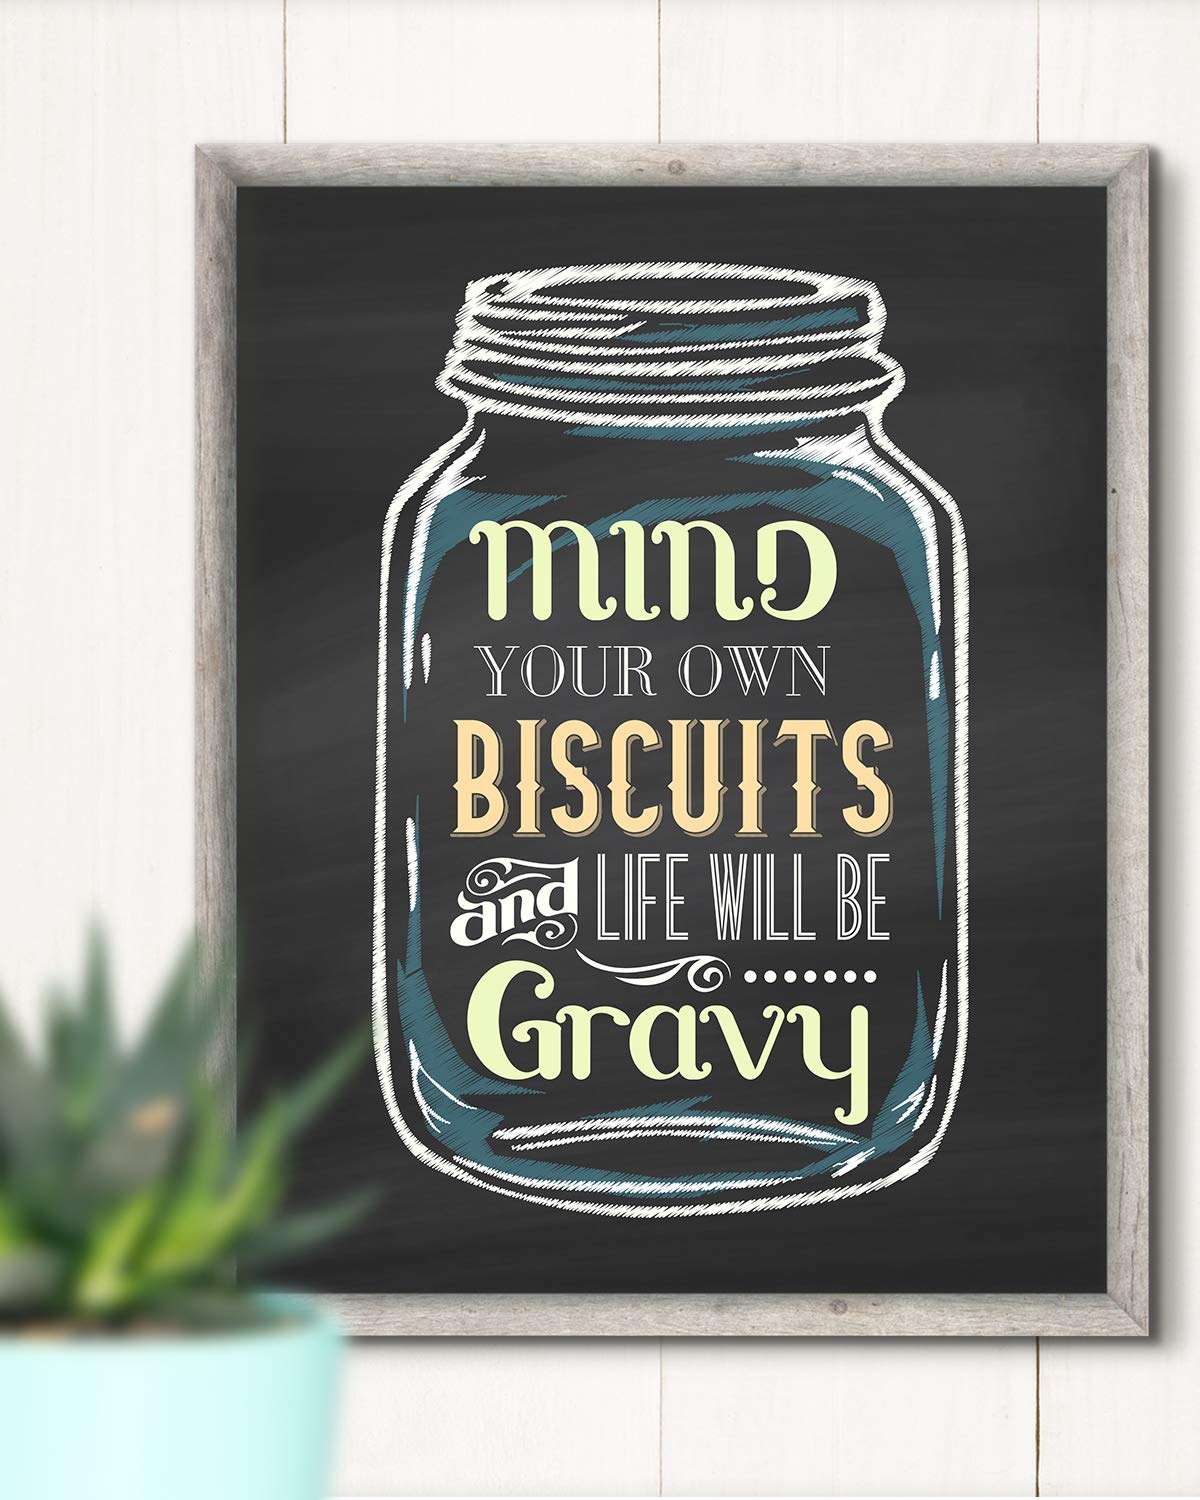 Wall Decor Art Print great for kitchen or dining area Mind Your Own Biscuits and Life Will Be Gravy 8x10 unframed print